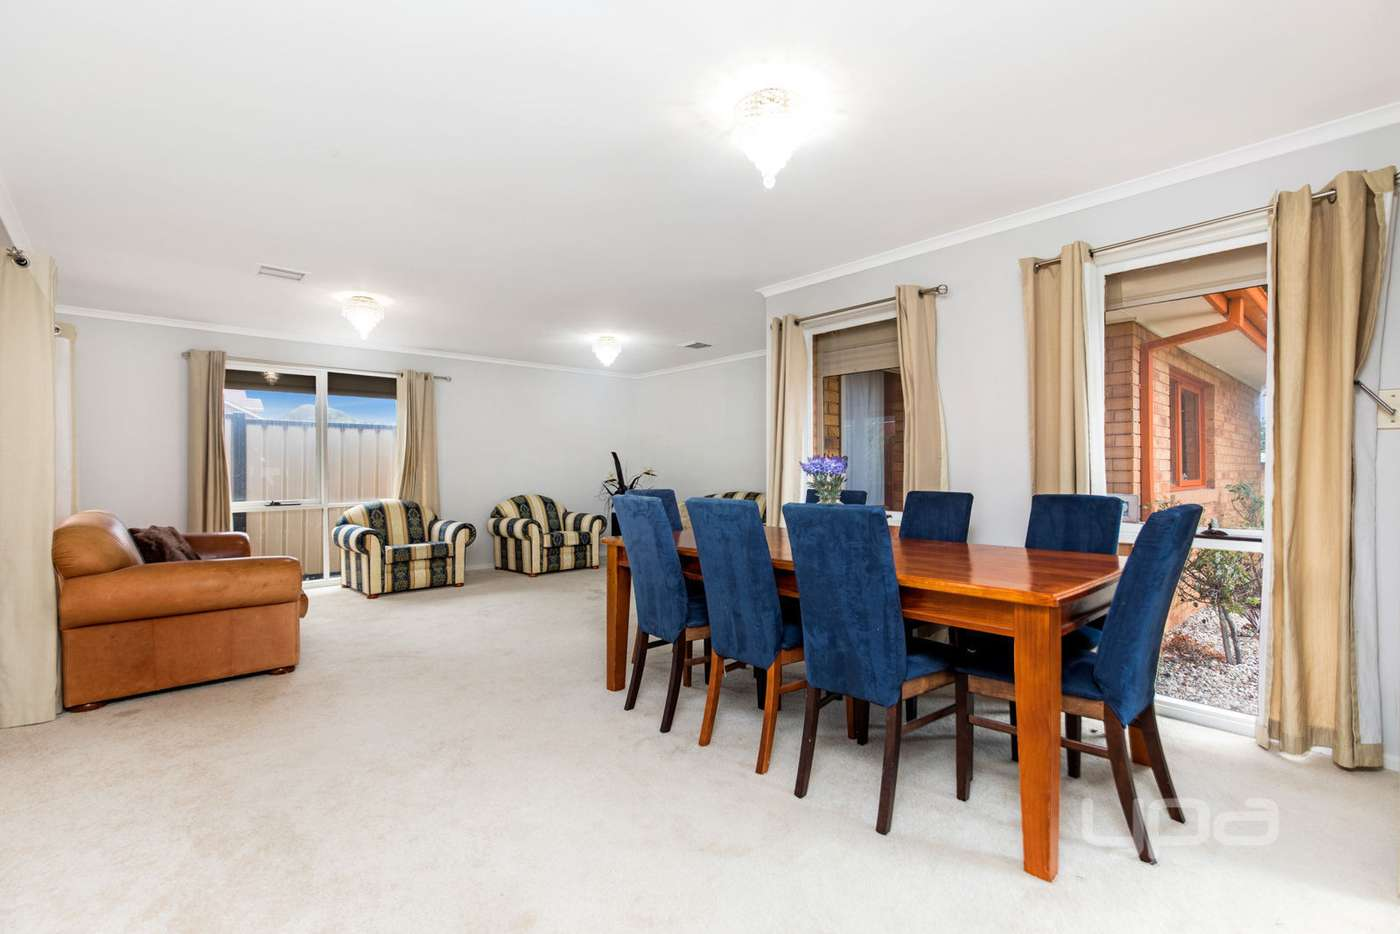 Fifth view of Homely house listing, 111 Chichester Drive, Taylors Lakes VIC 3038